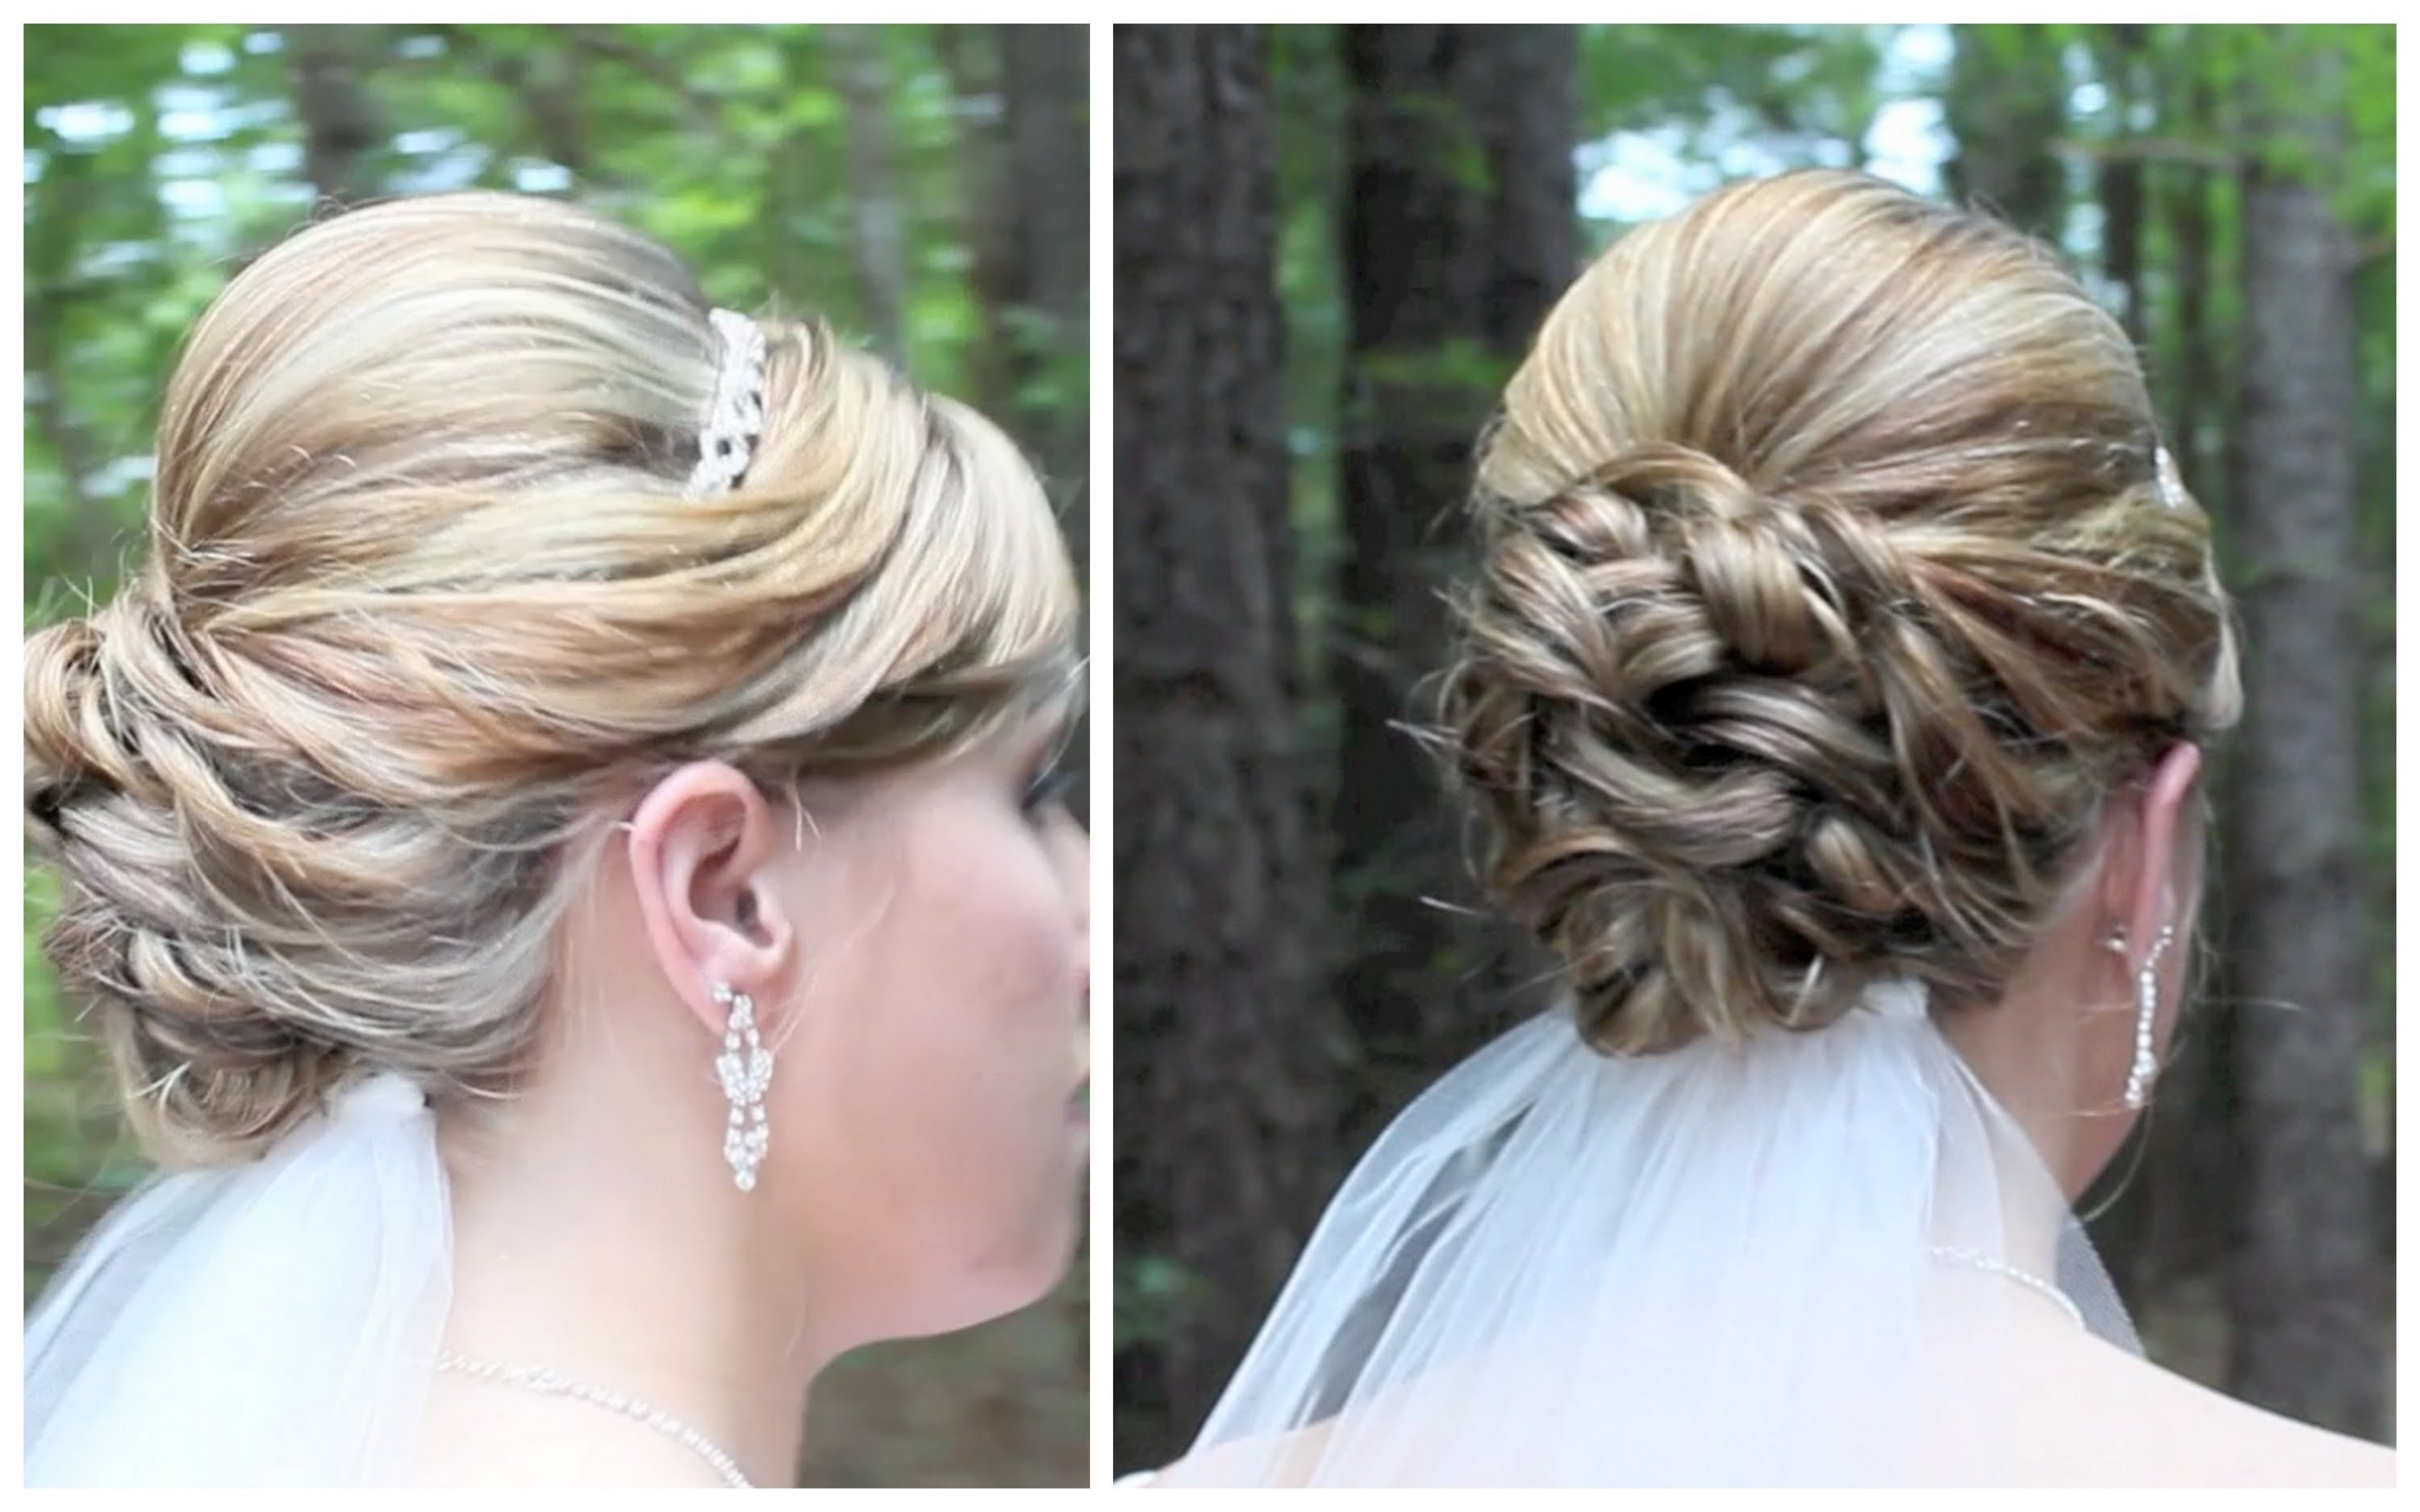 Formidable Wedding Hairstyles Half Up Half Down Medium Length For Pertaining To Half Hair Updos For Medium Length Hair (View 13 of 15)